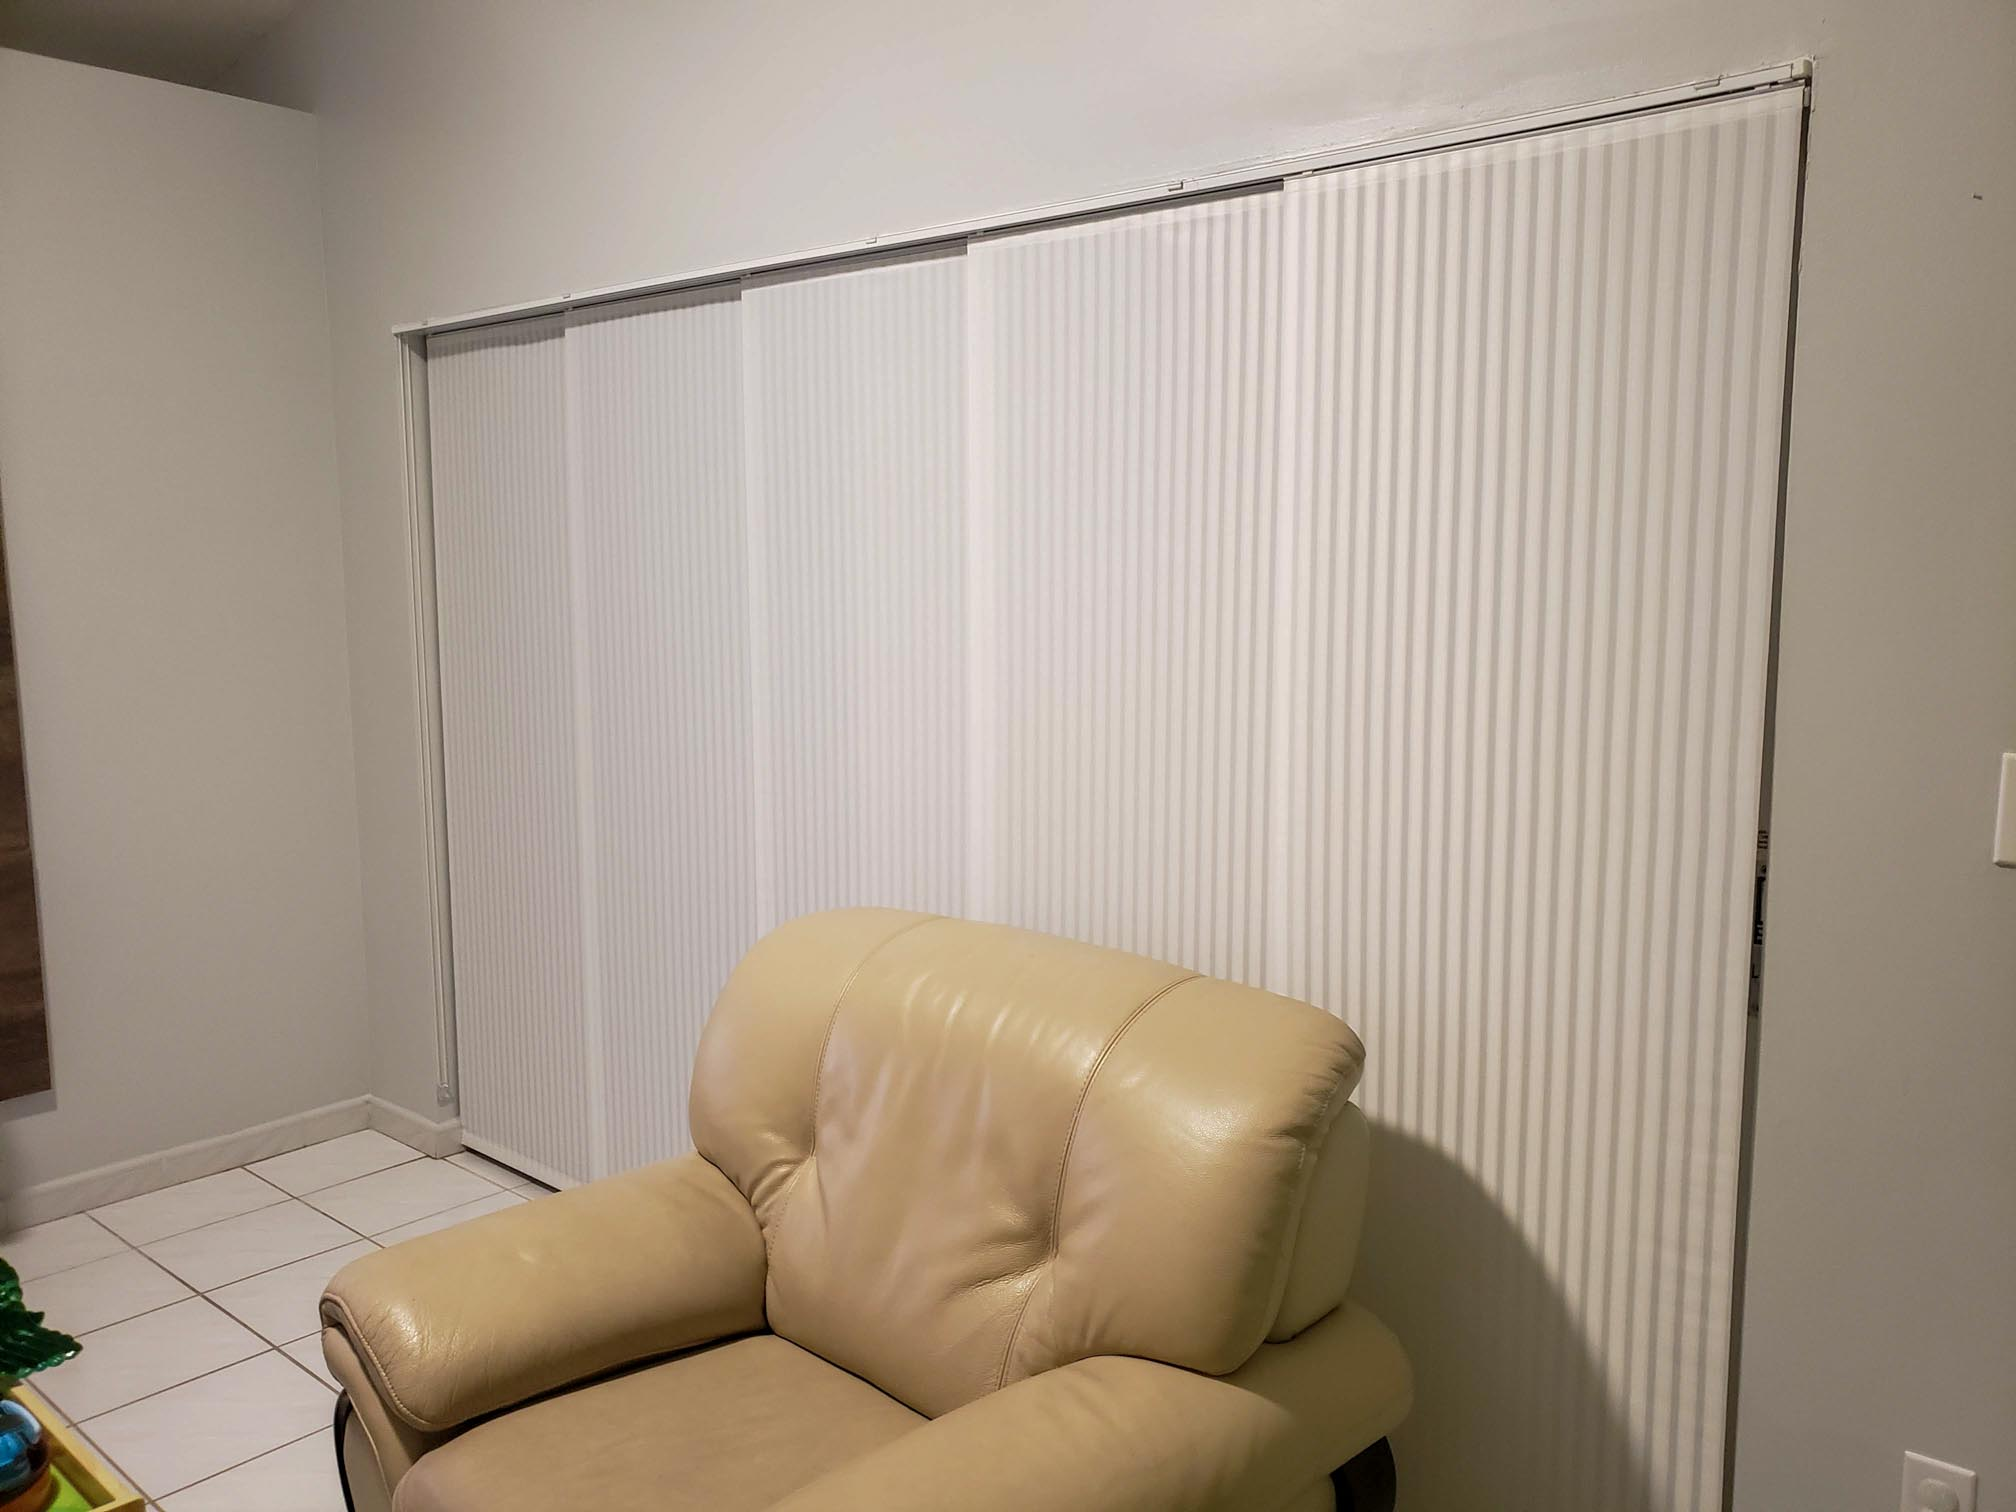 sliding panel curtains gallery SLIDING PANEL CURTAINS GALLERY 20180808 203659